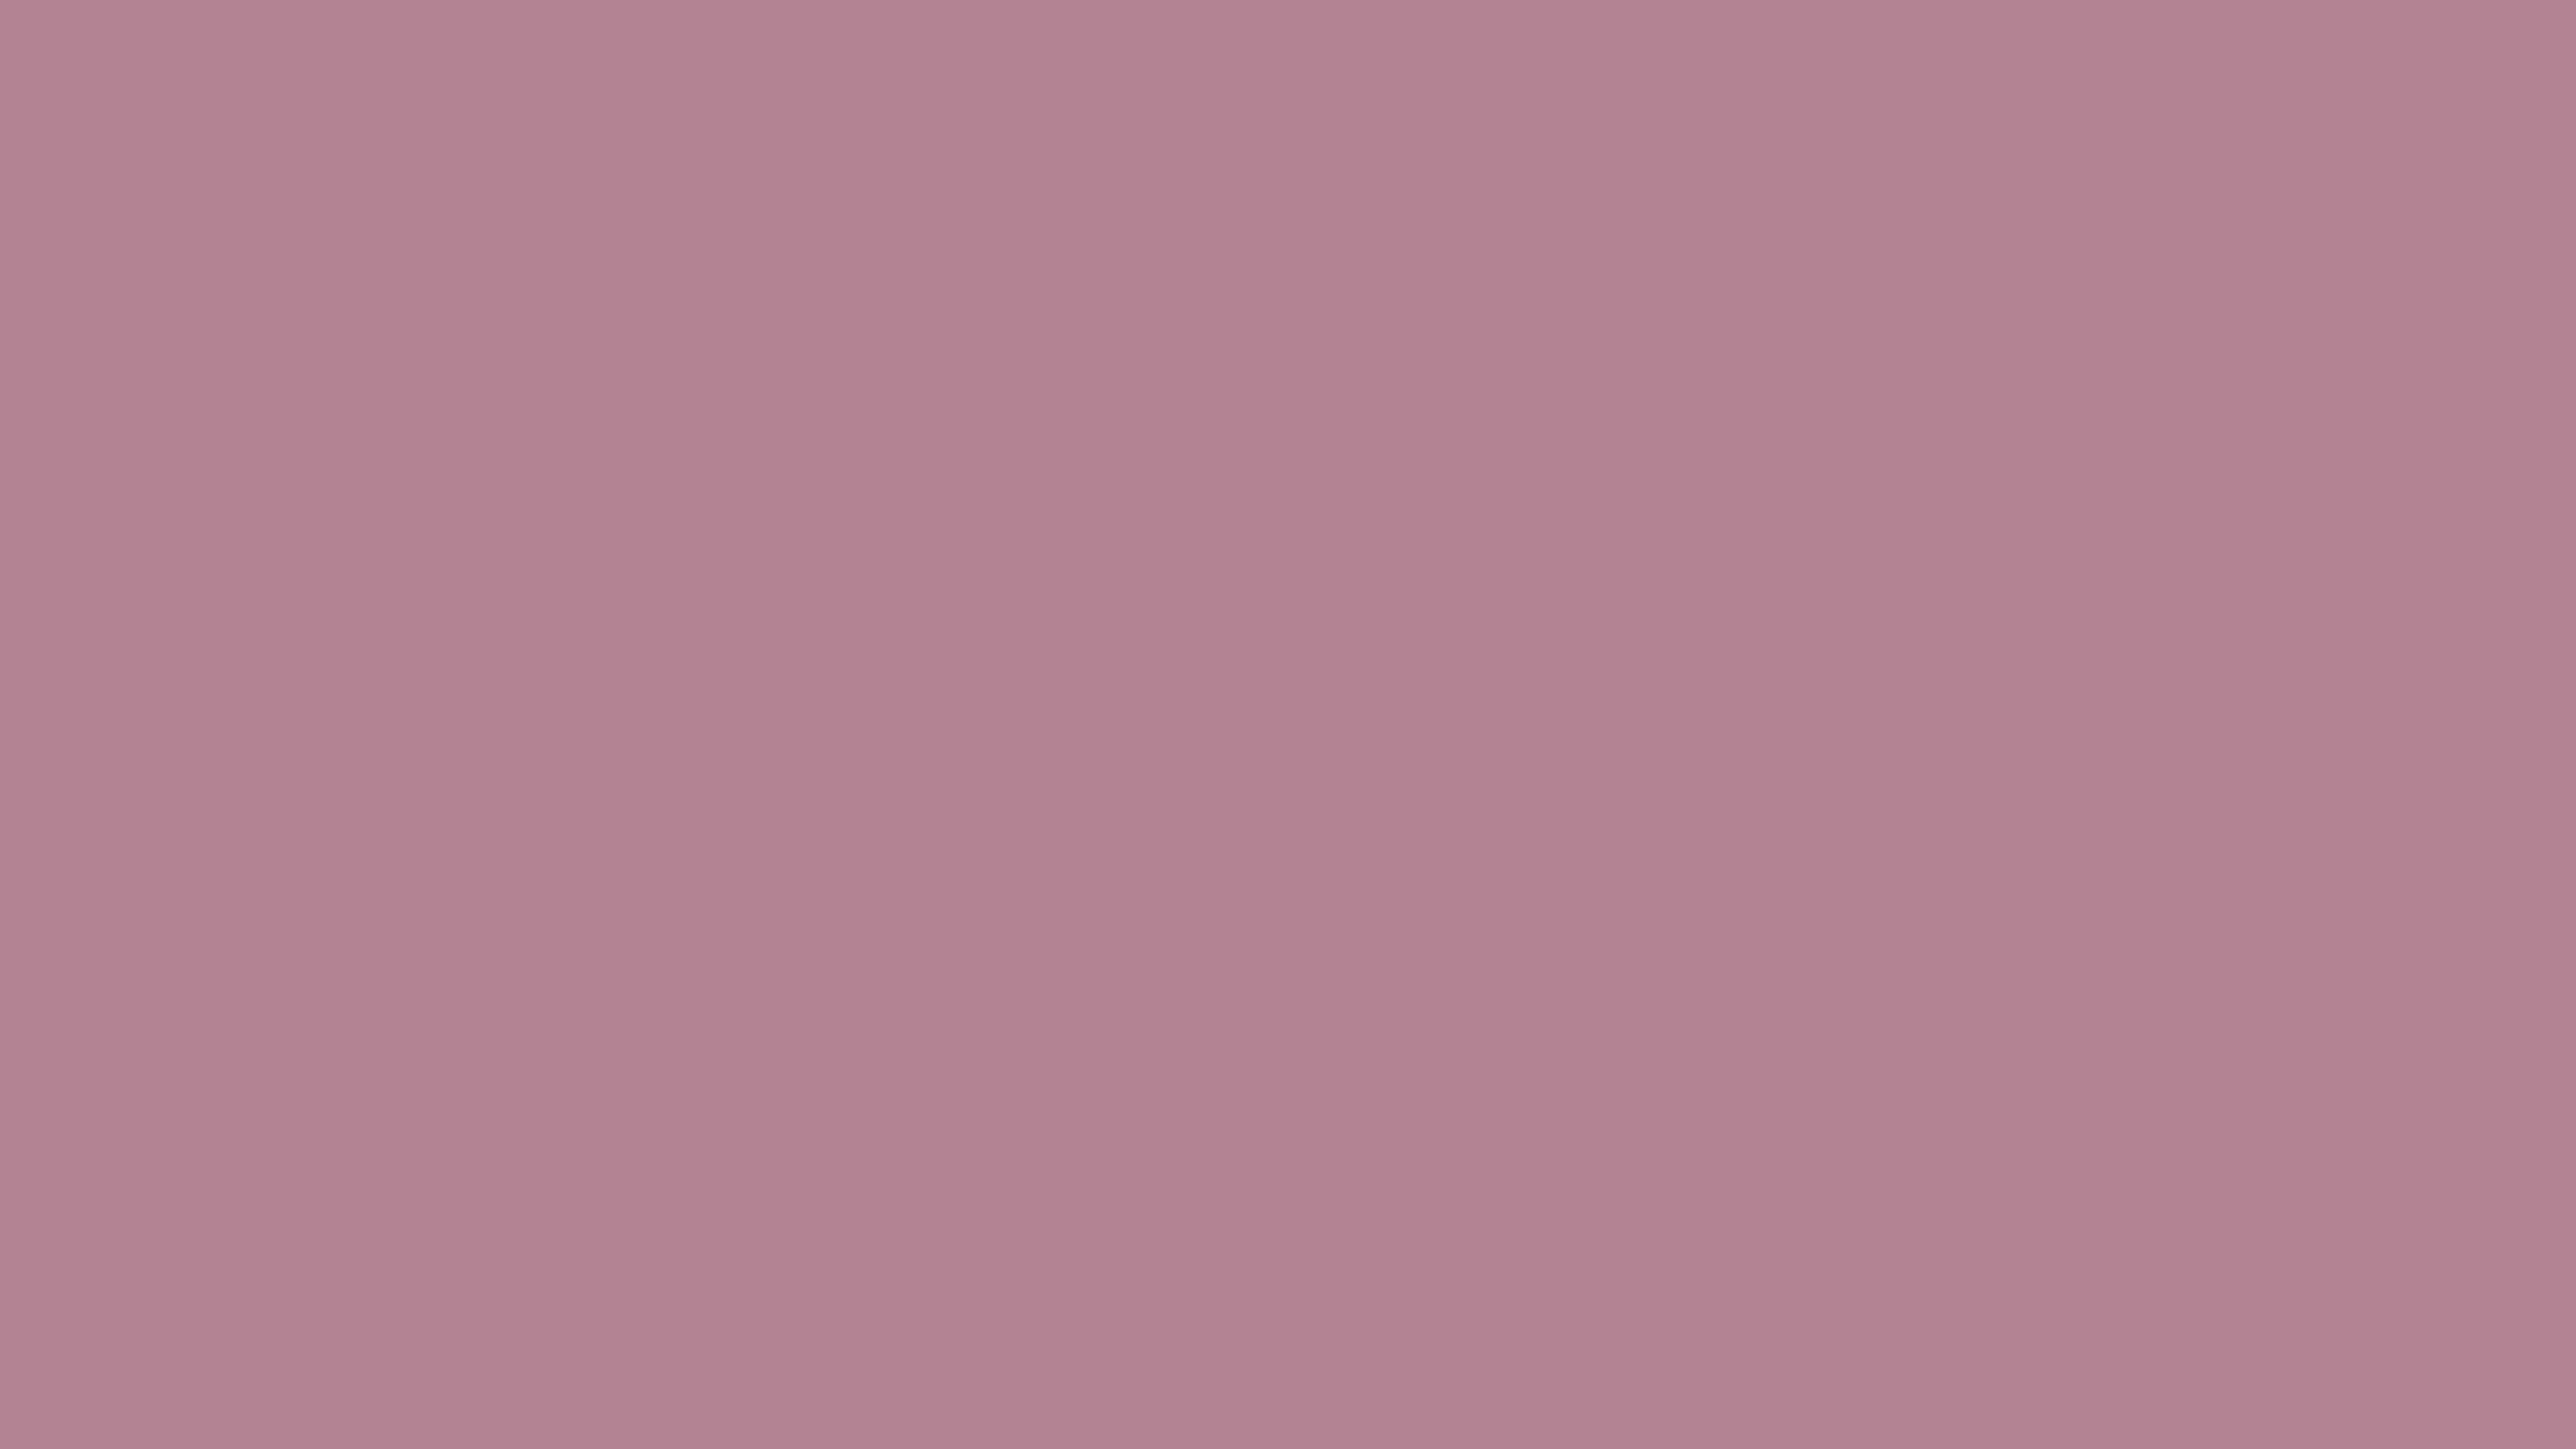 4096x2304 English Lavender Solid Color Background